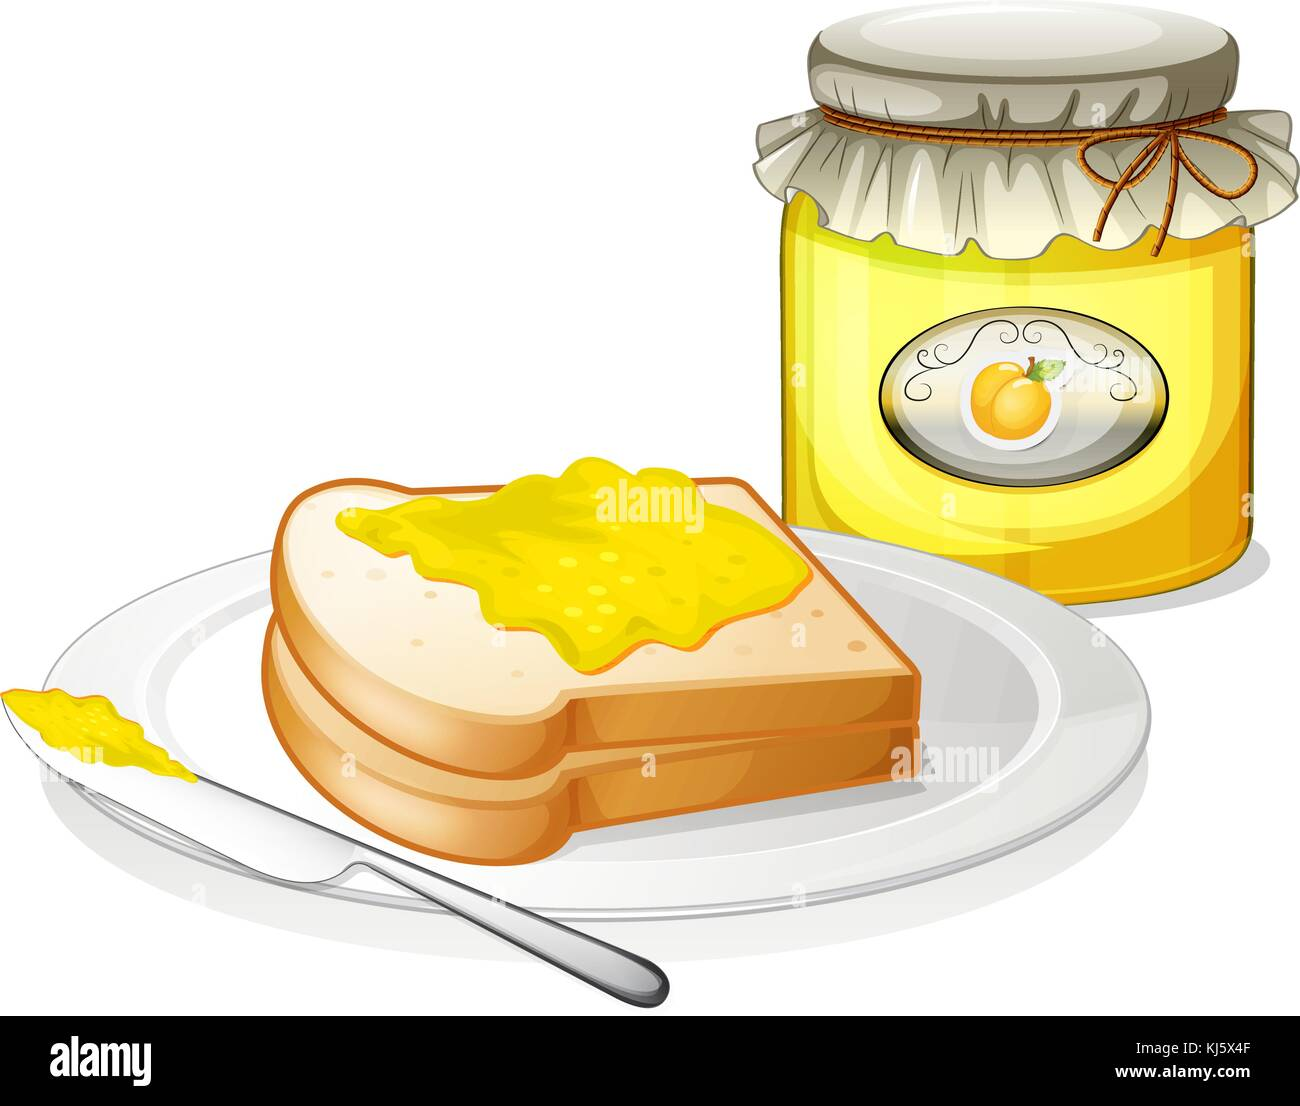 Illustration of a lemon jam with bread on a white background - Stock Vector